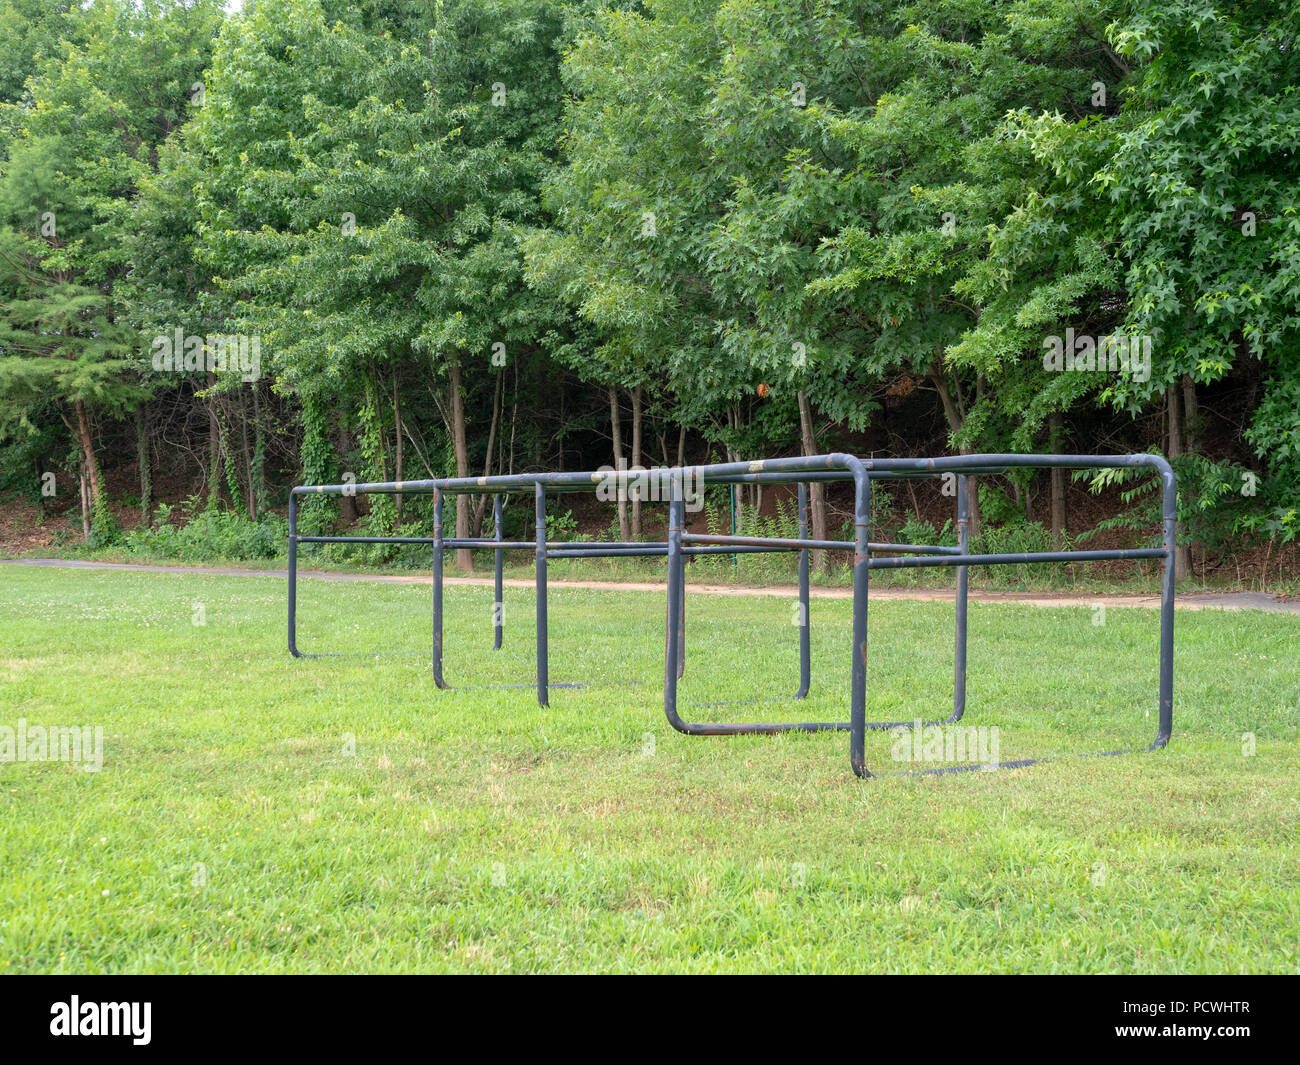 Old, damaged football chutes sitting in a grassy field in the offseason - Stock Image